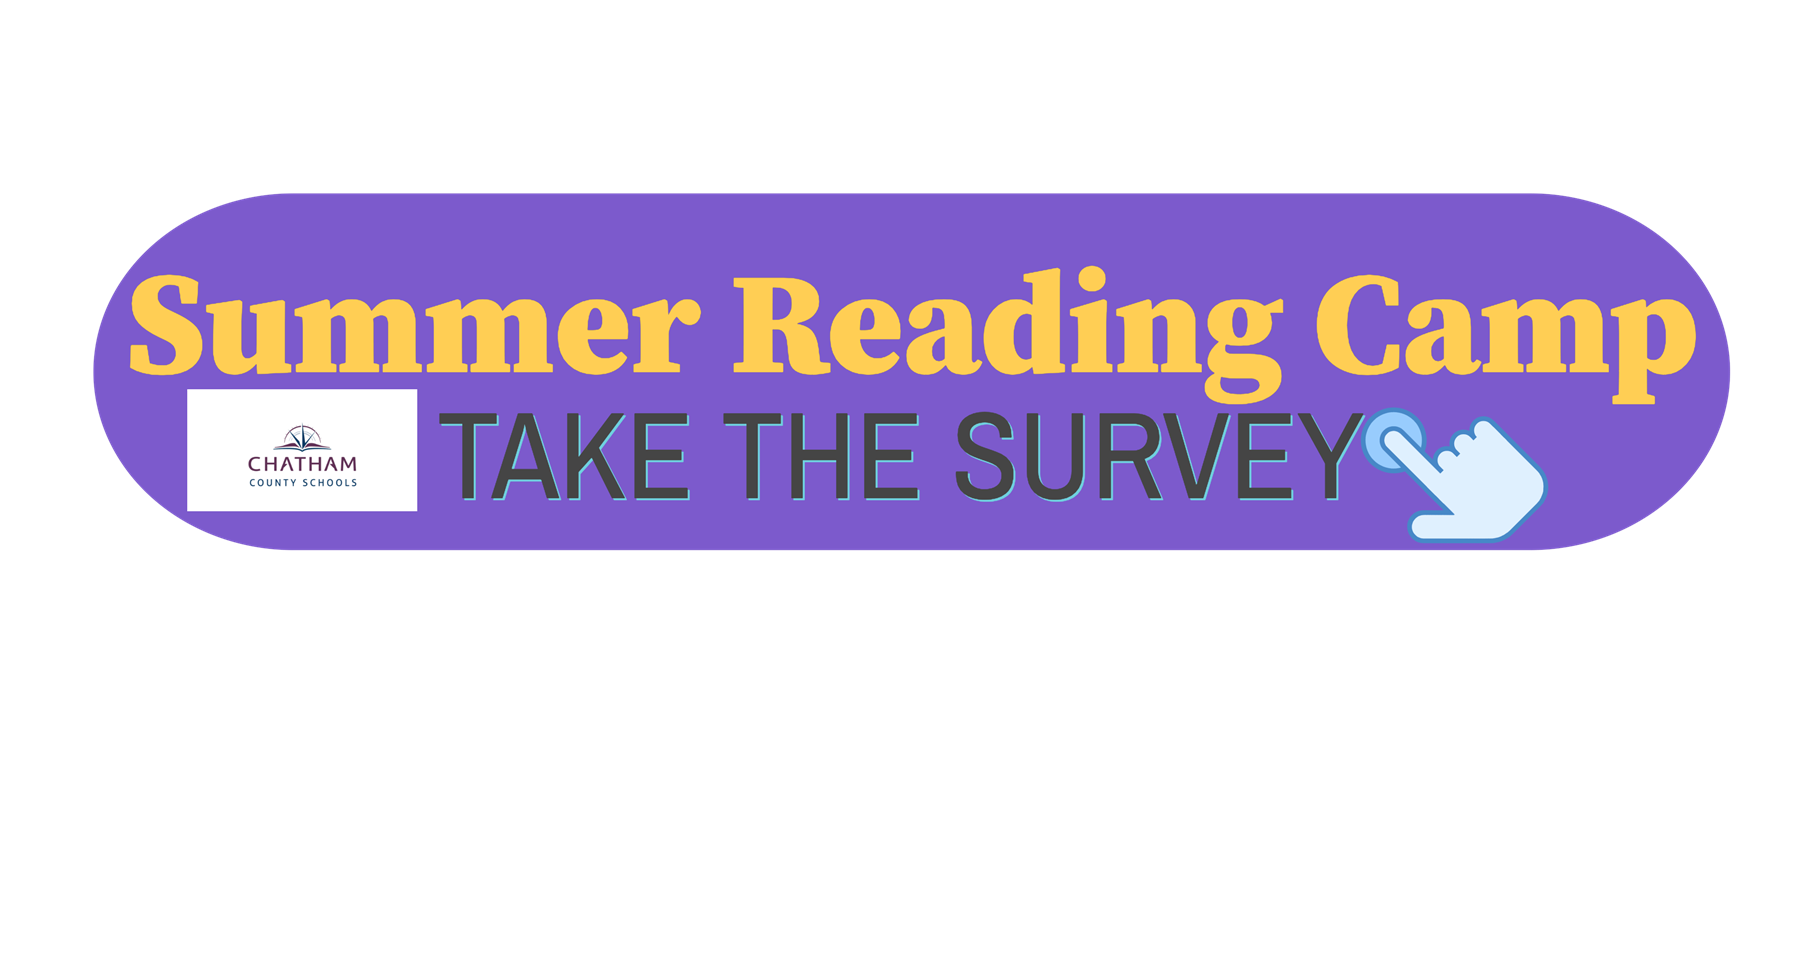 Take the Summer Reading Camp survey.